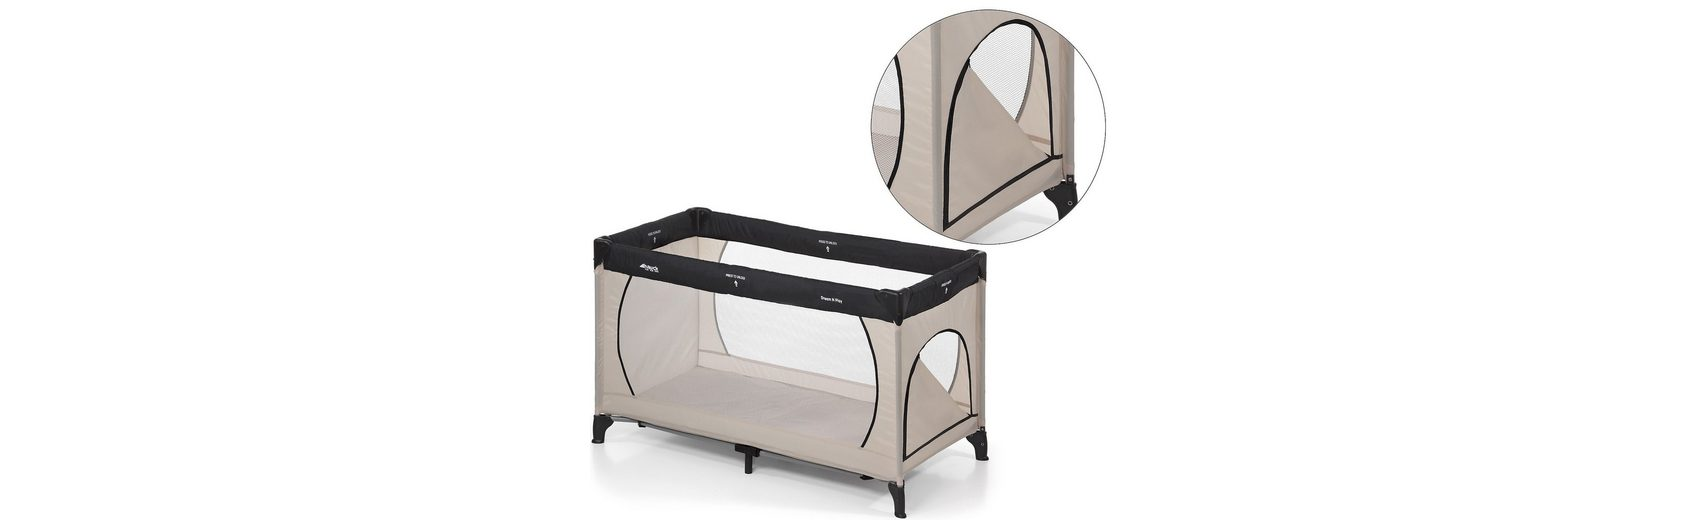 Hauck Reisebett Dream'n Play Plus, beige/grey